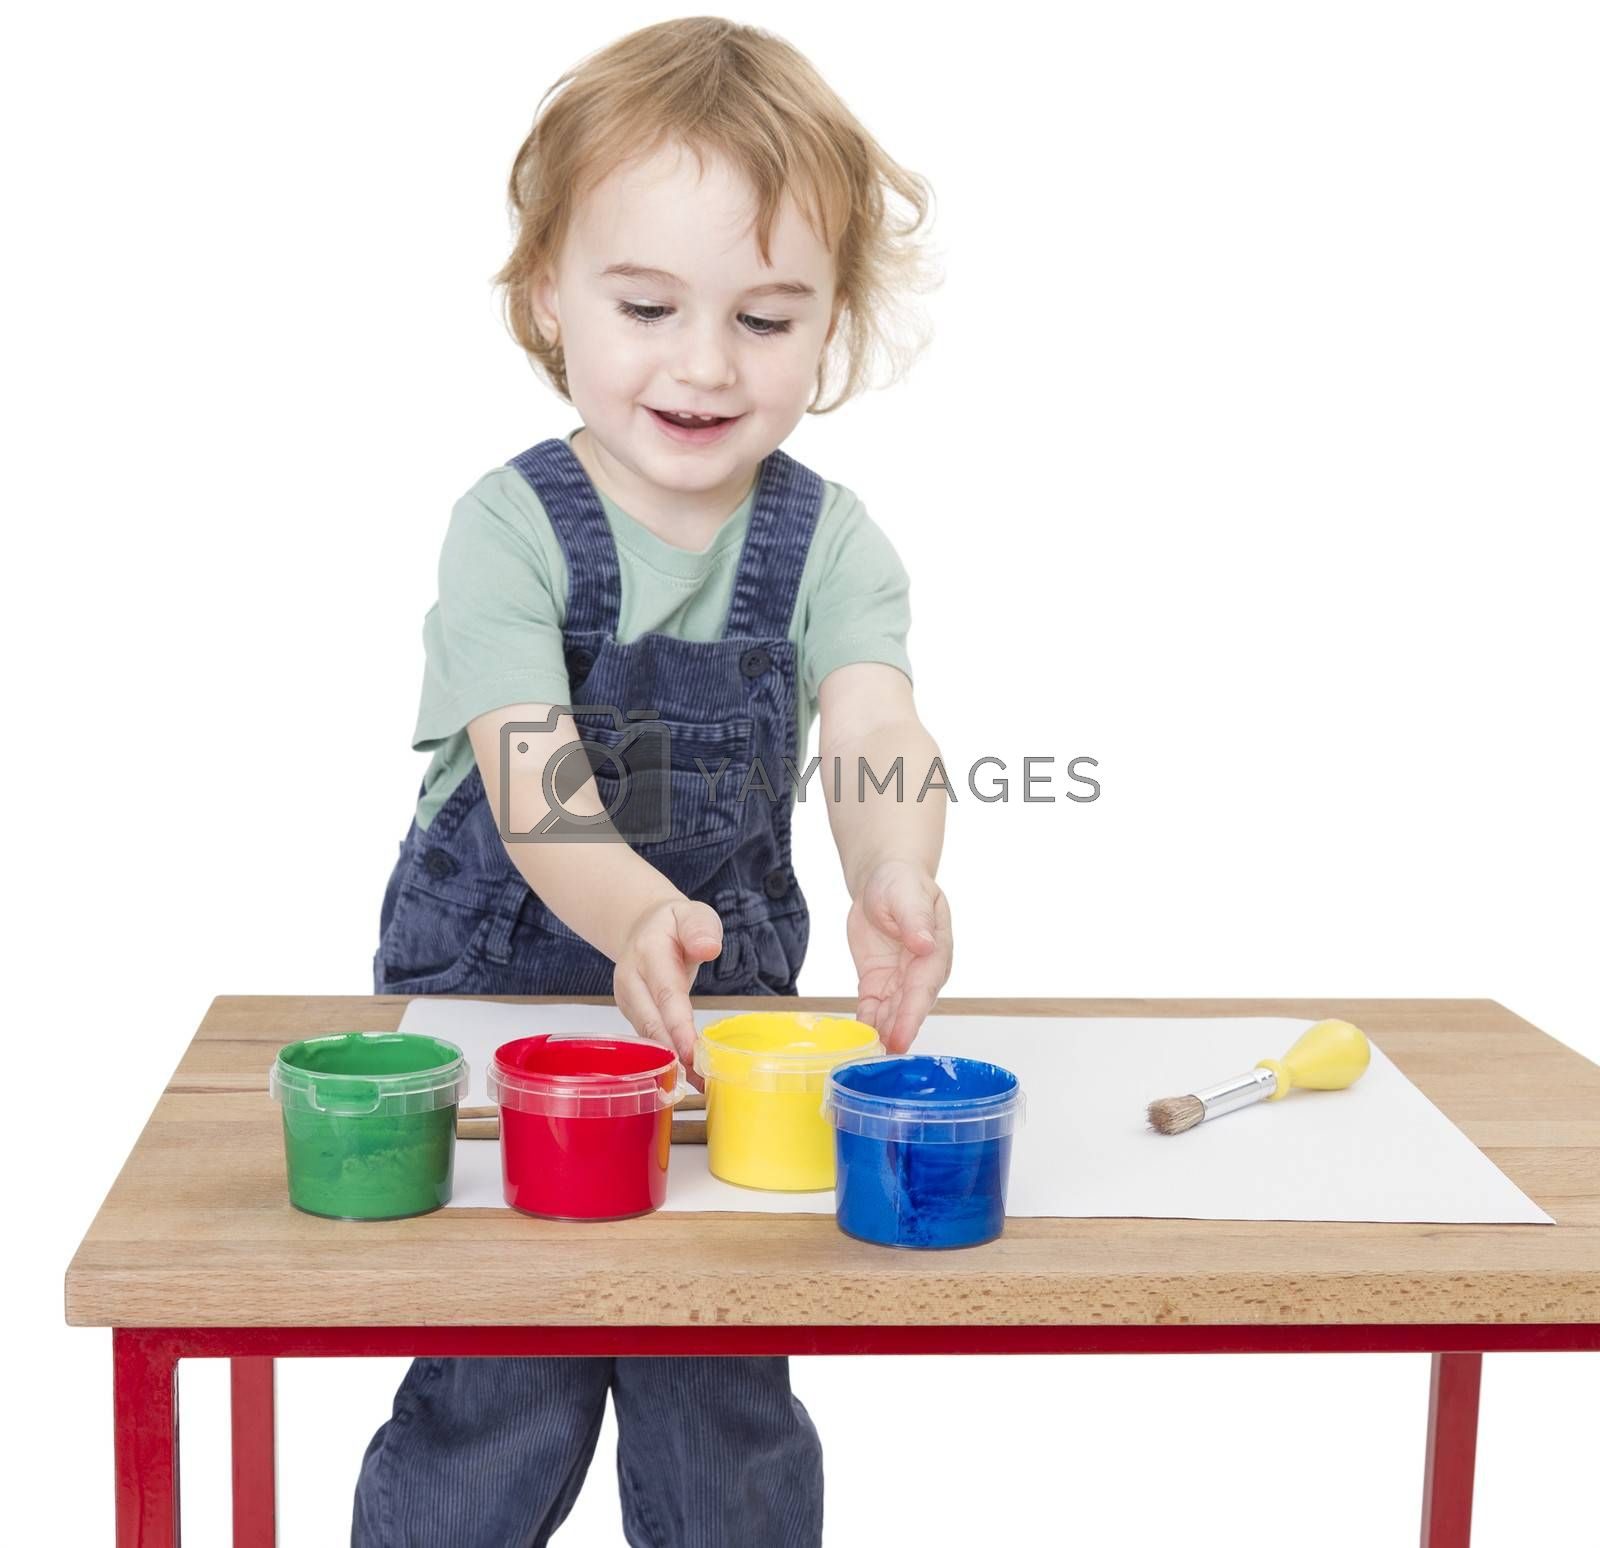 child with finger paint on wooden desk isolated in white background